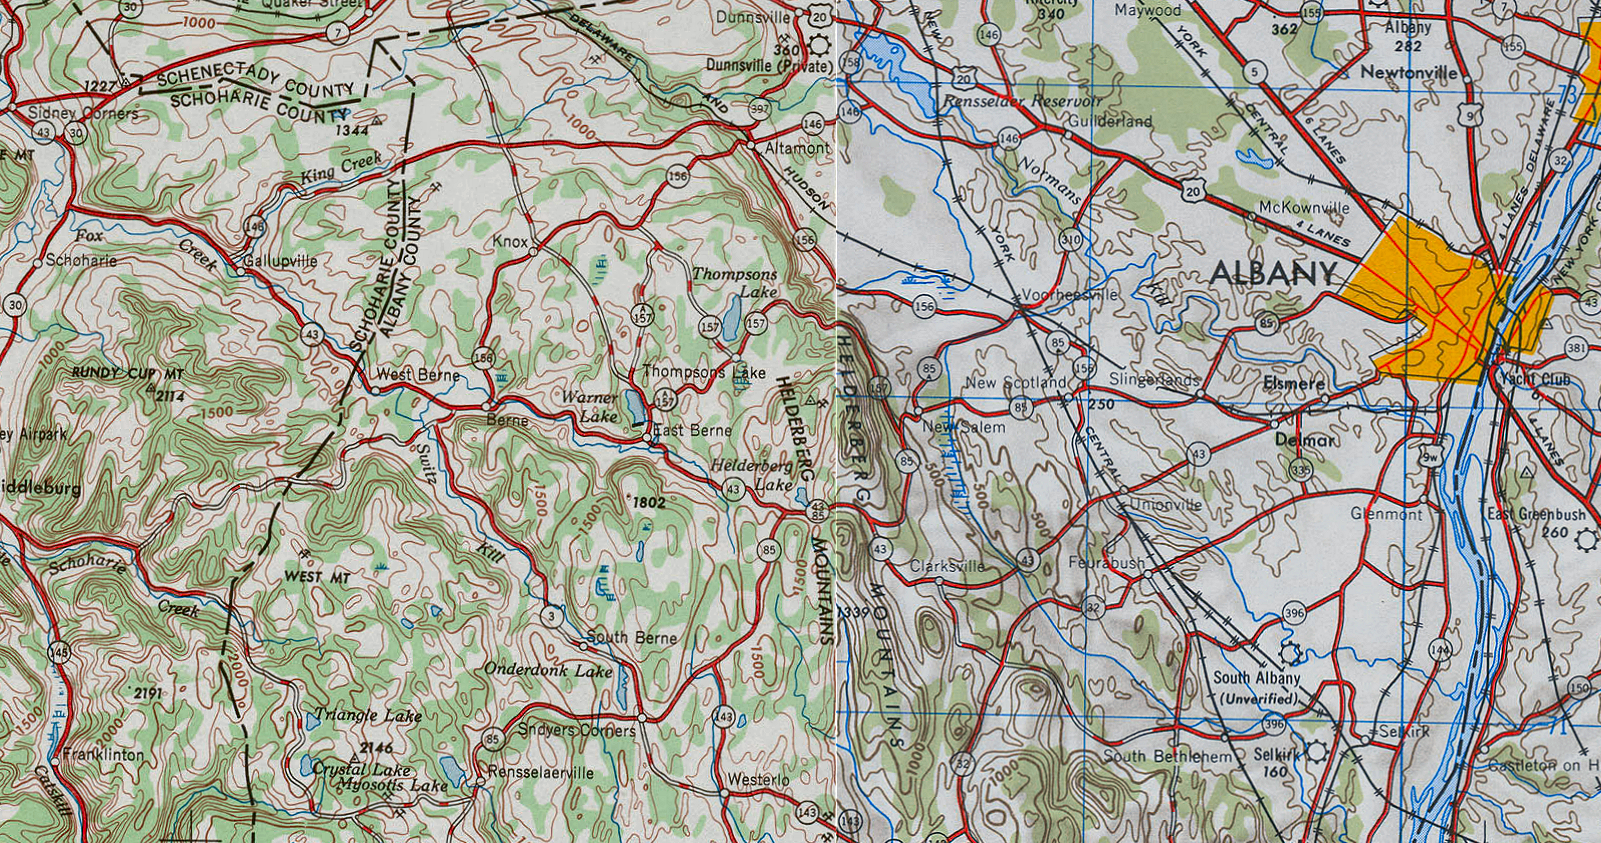 FileNY 43 former routing map late 1940spng Wikimedia Commons